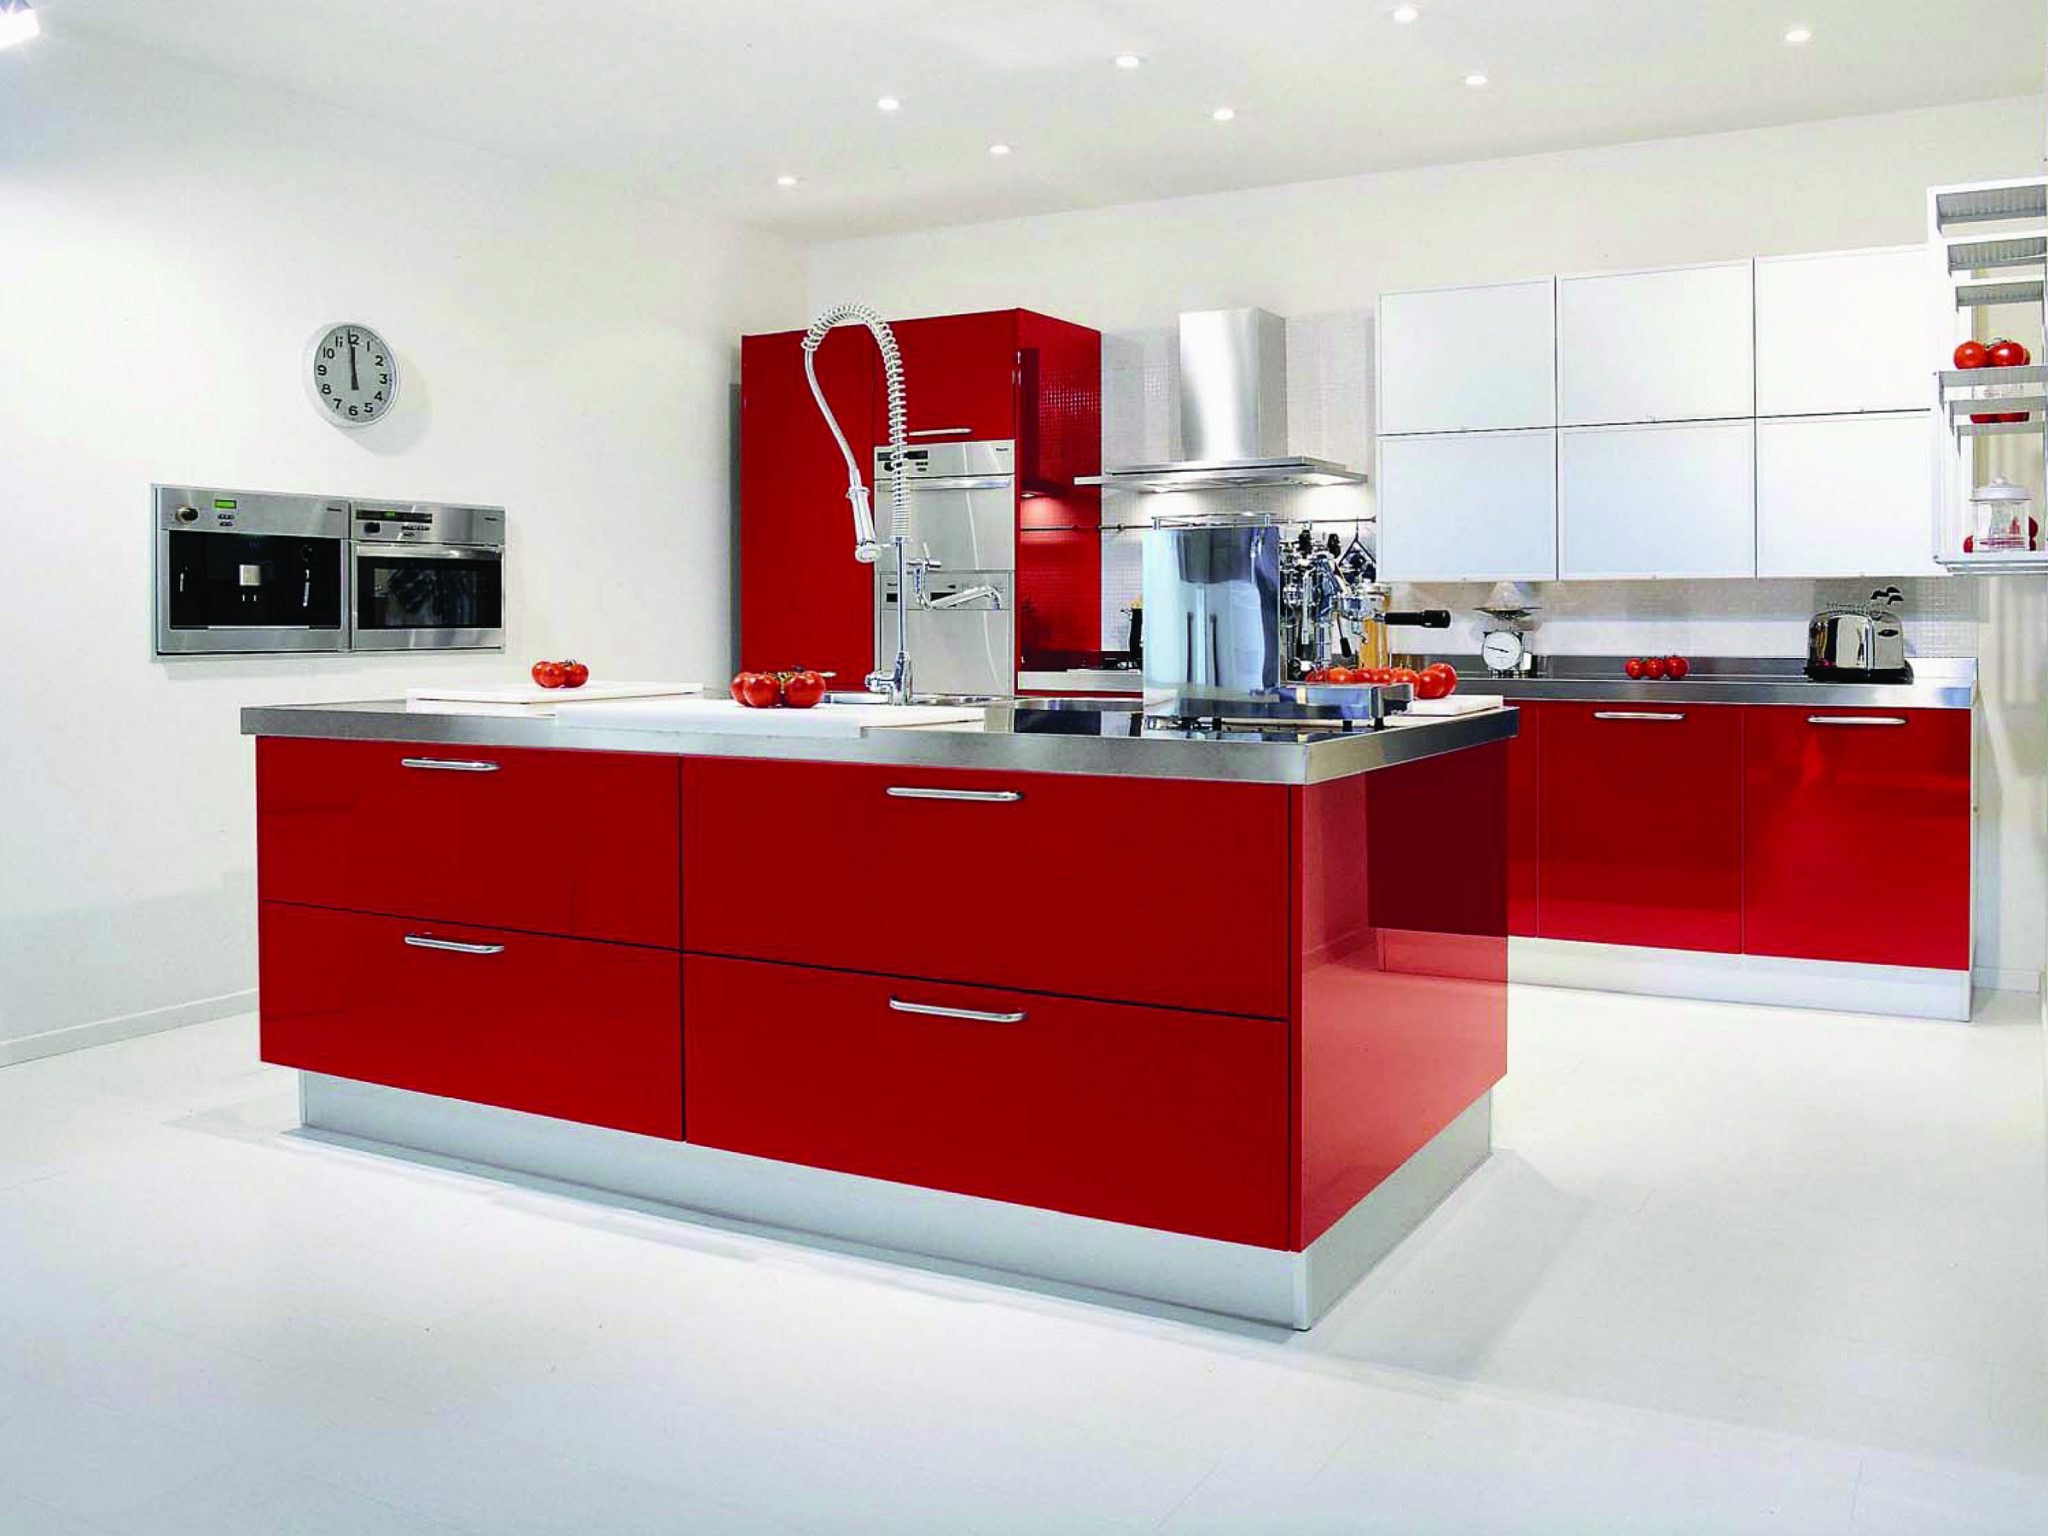 alternatives to kitchen cabinets delta lewiston faucet alternative cabinet materials edgewood cabinetry